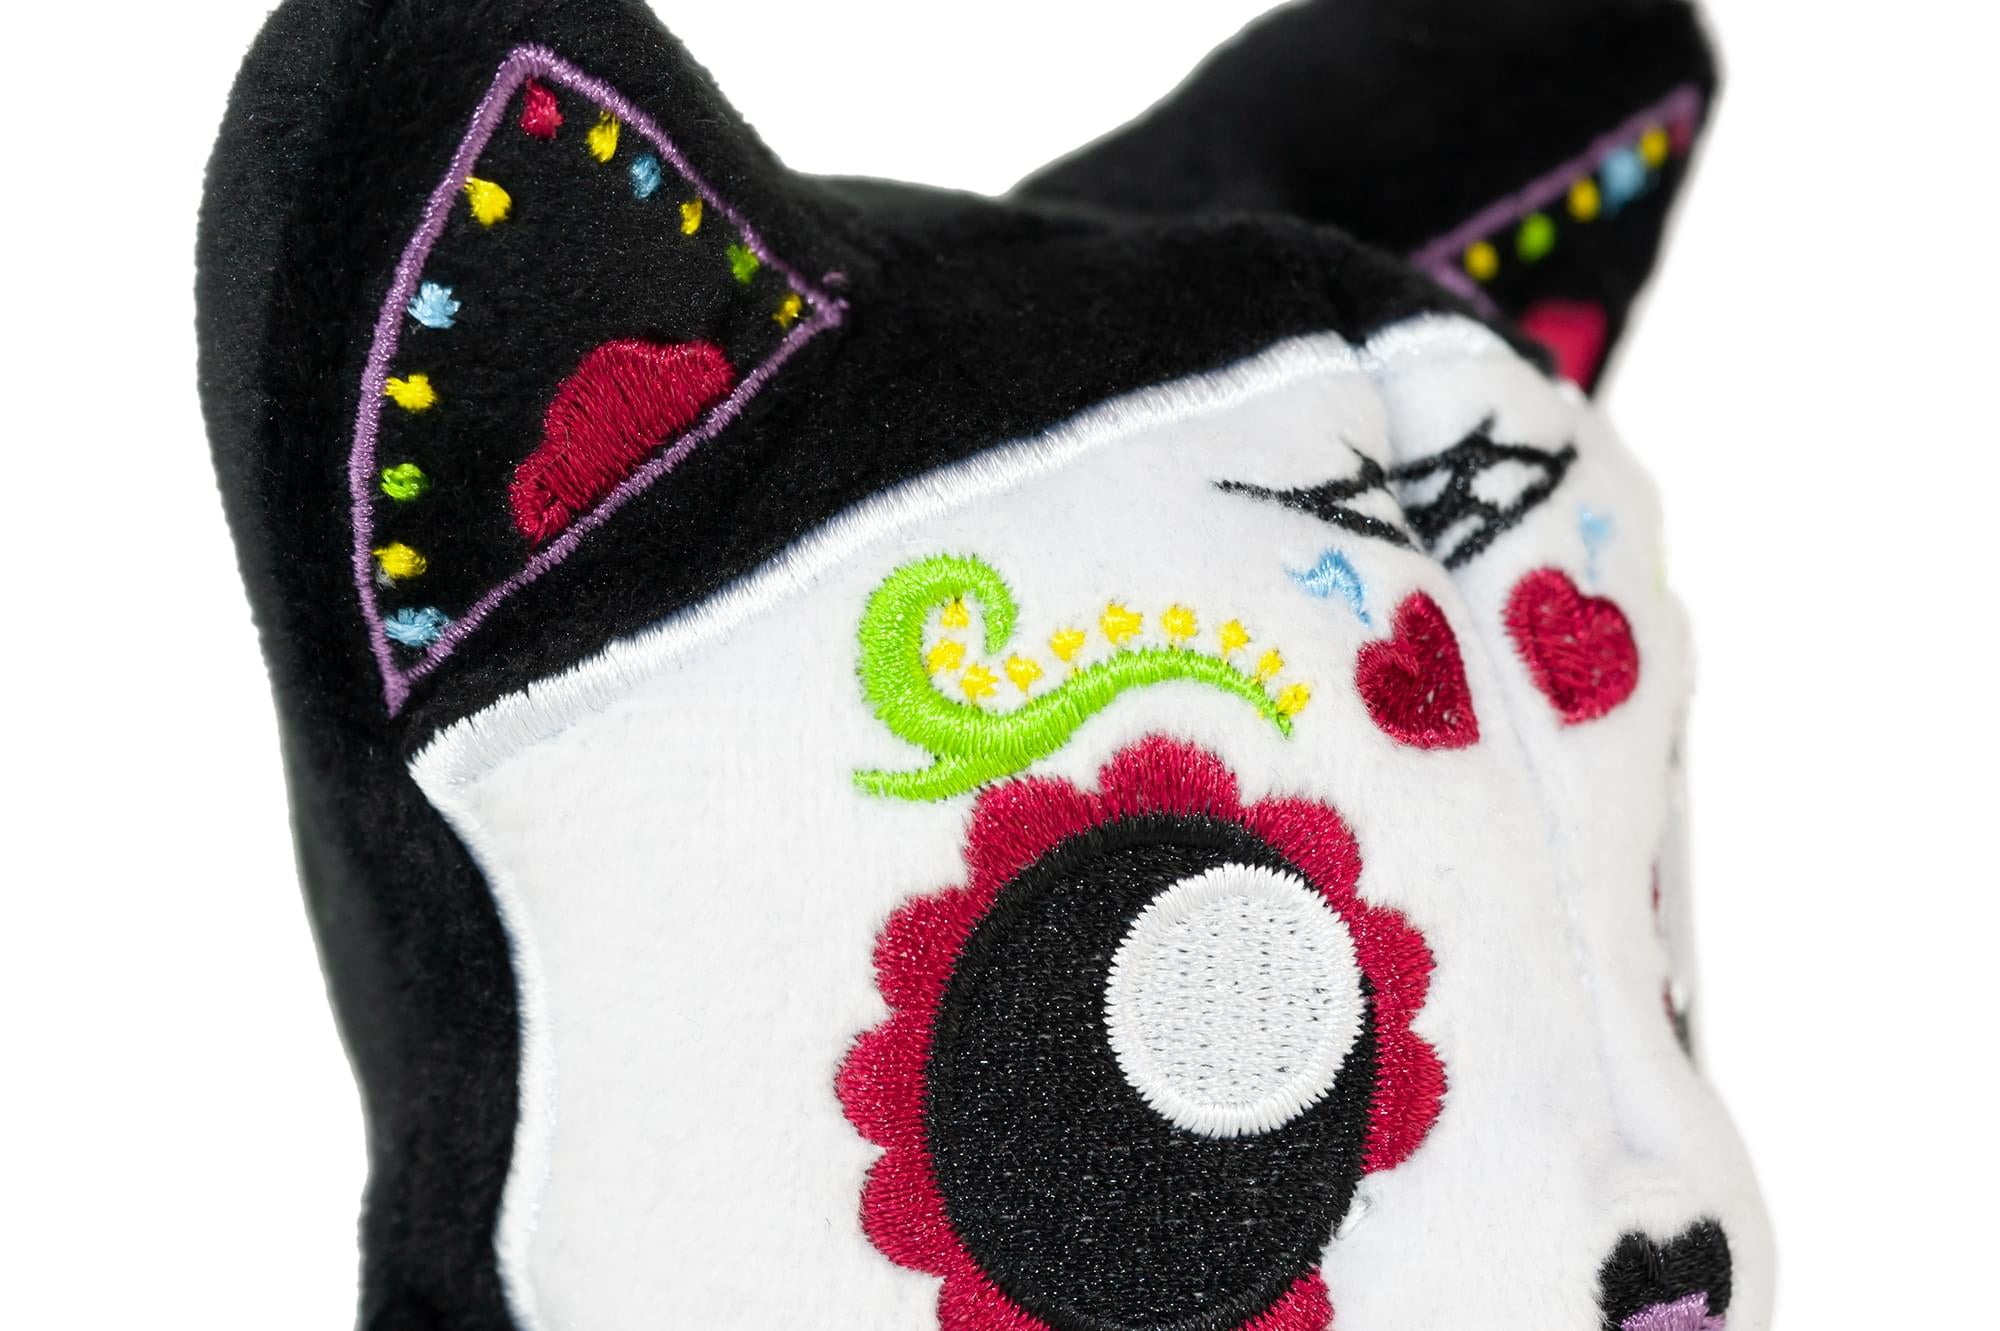 Tentacle Kitty 4-inch Little Ones Plush - Day Of The Dead Sugar Skull Design